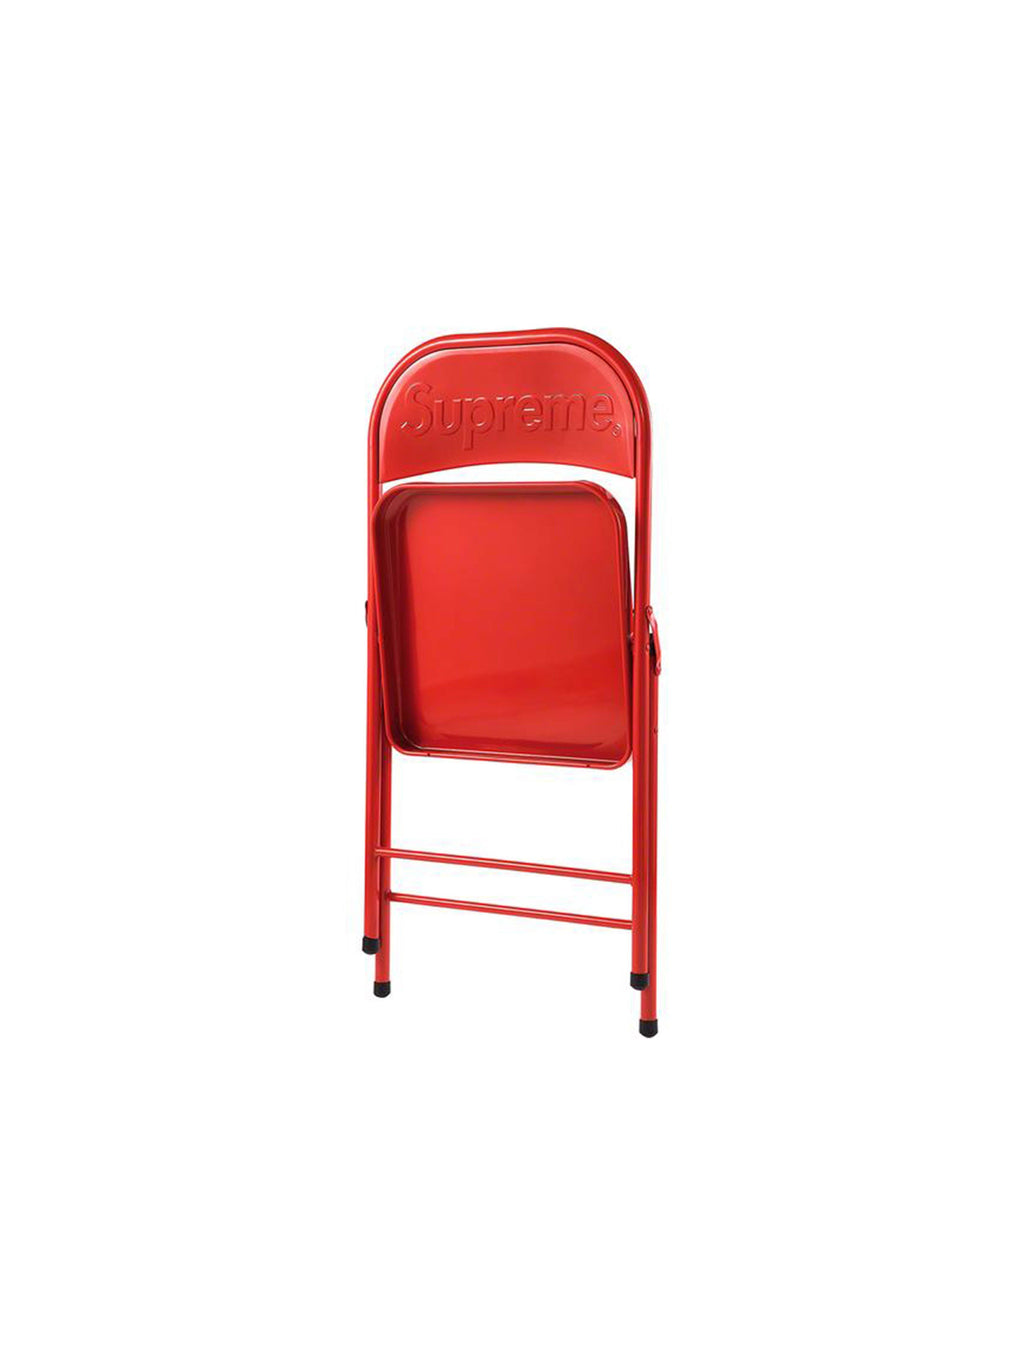 Supreme Metal Folding Chair Red - PRIOR